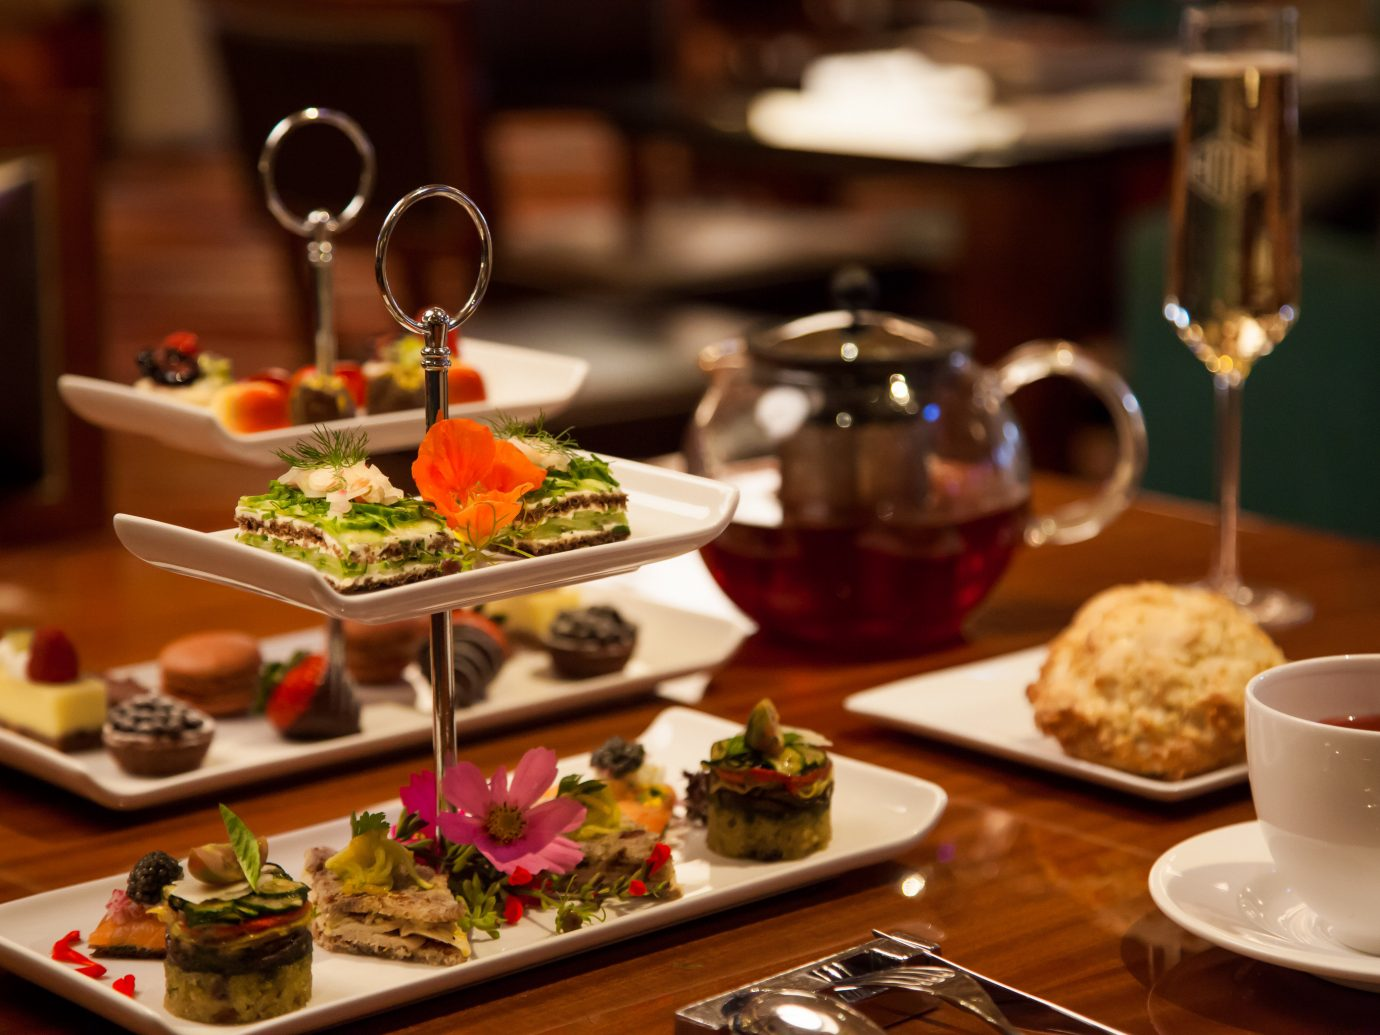 Hotels table indoor plate meal brunch dinner food restaurant supper breakfast dish sense lunch cuisine dining table